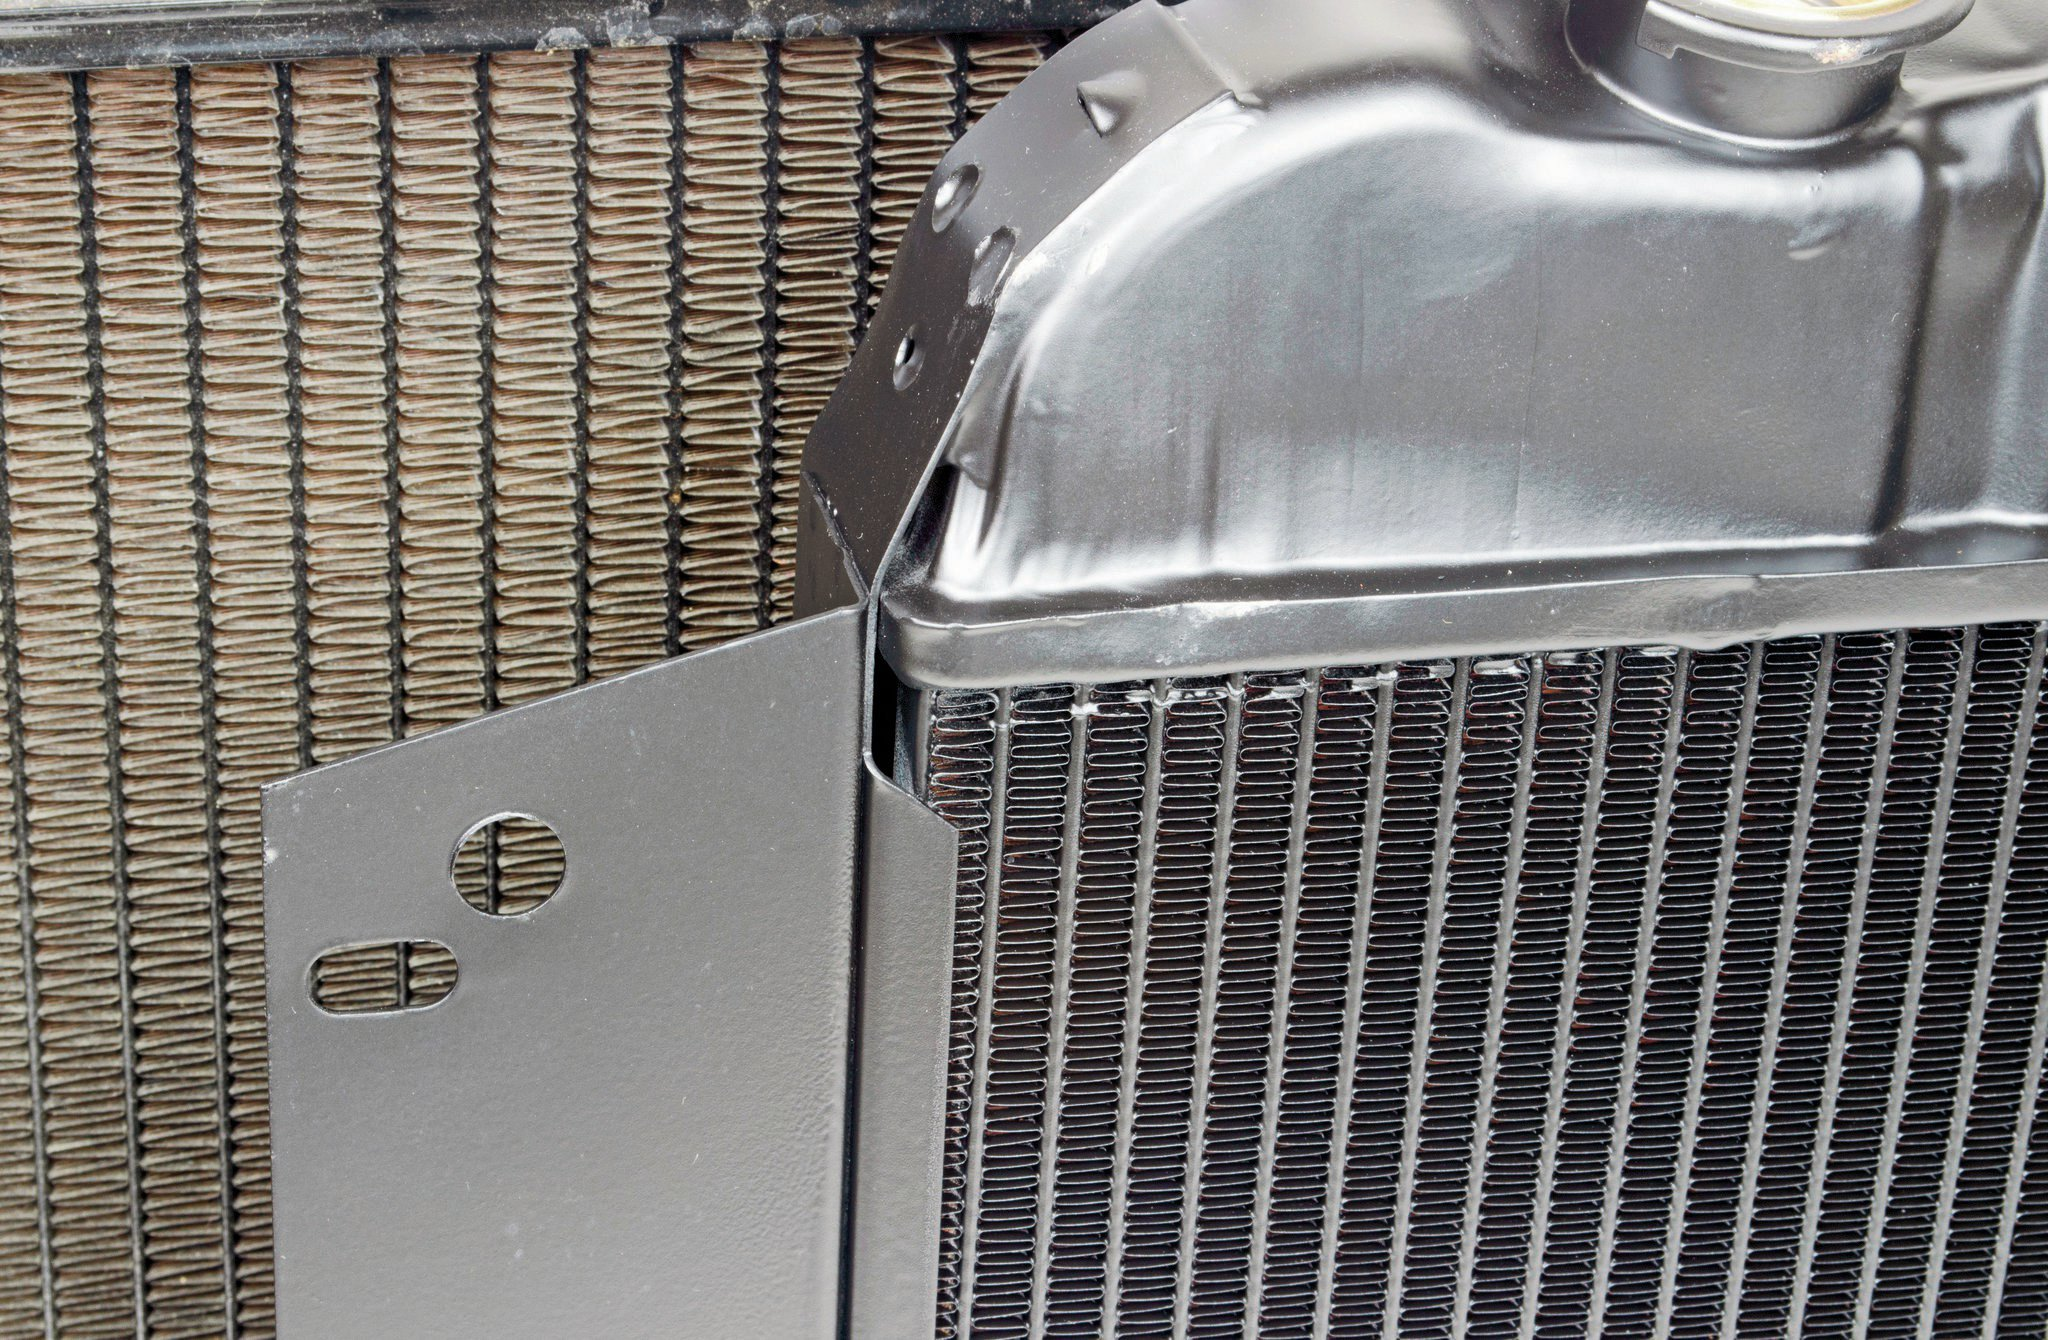 "You'll hear ""high efficiency"" used a lot to describe a radiator. This has to do with the tube and fin layout. This U.S. Radiator (in front) features the company's high-efficiency core, which uses 1⁄2-inch tubes on 3⁄8-inch centers, compared to most old brass and copper radiators which have the tubes mounts on 9⁄16-inch centers. This means more tubes and more contact with cooling fins for better heat transfer. U.S. Radiator offers various core designs to match what you need in a specific application."